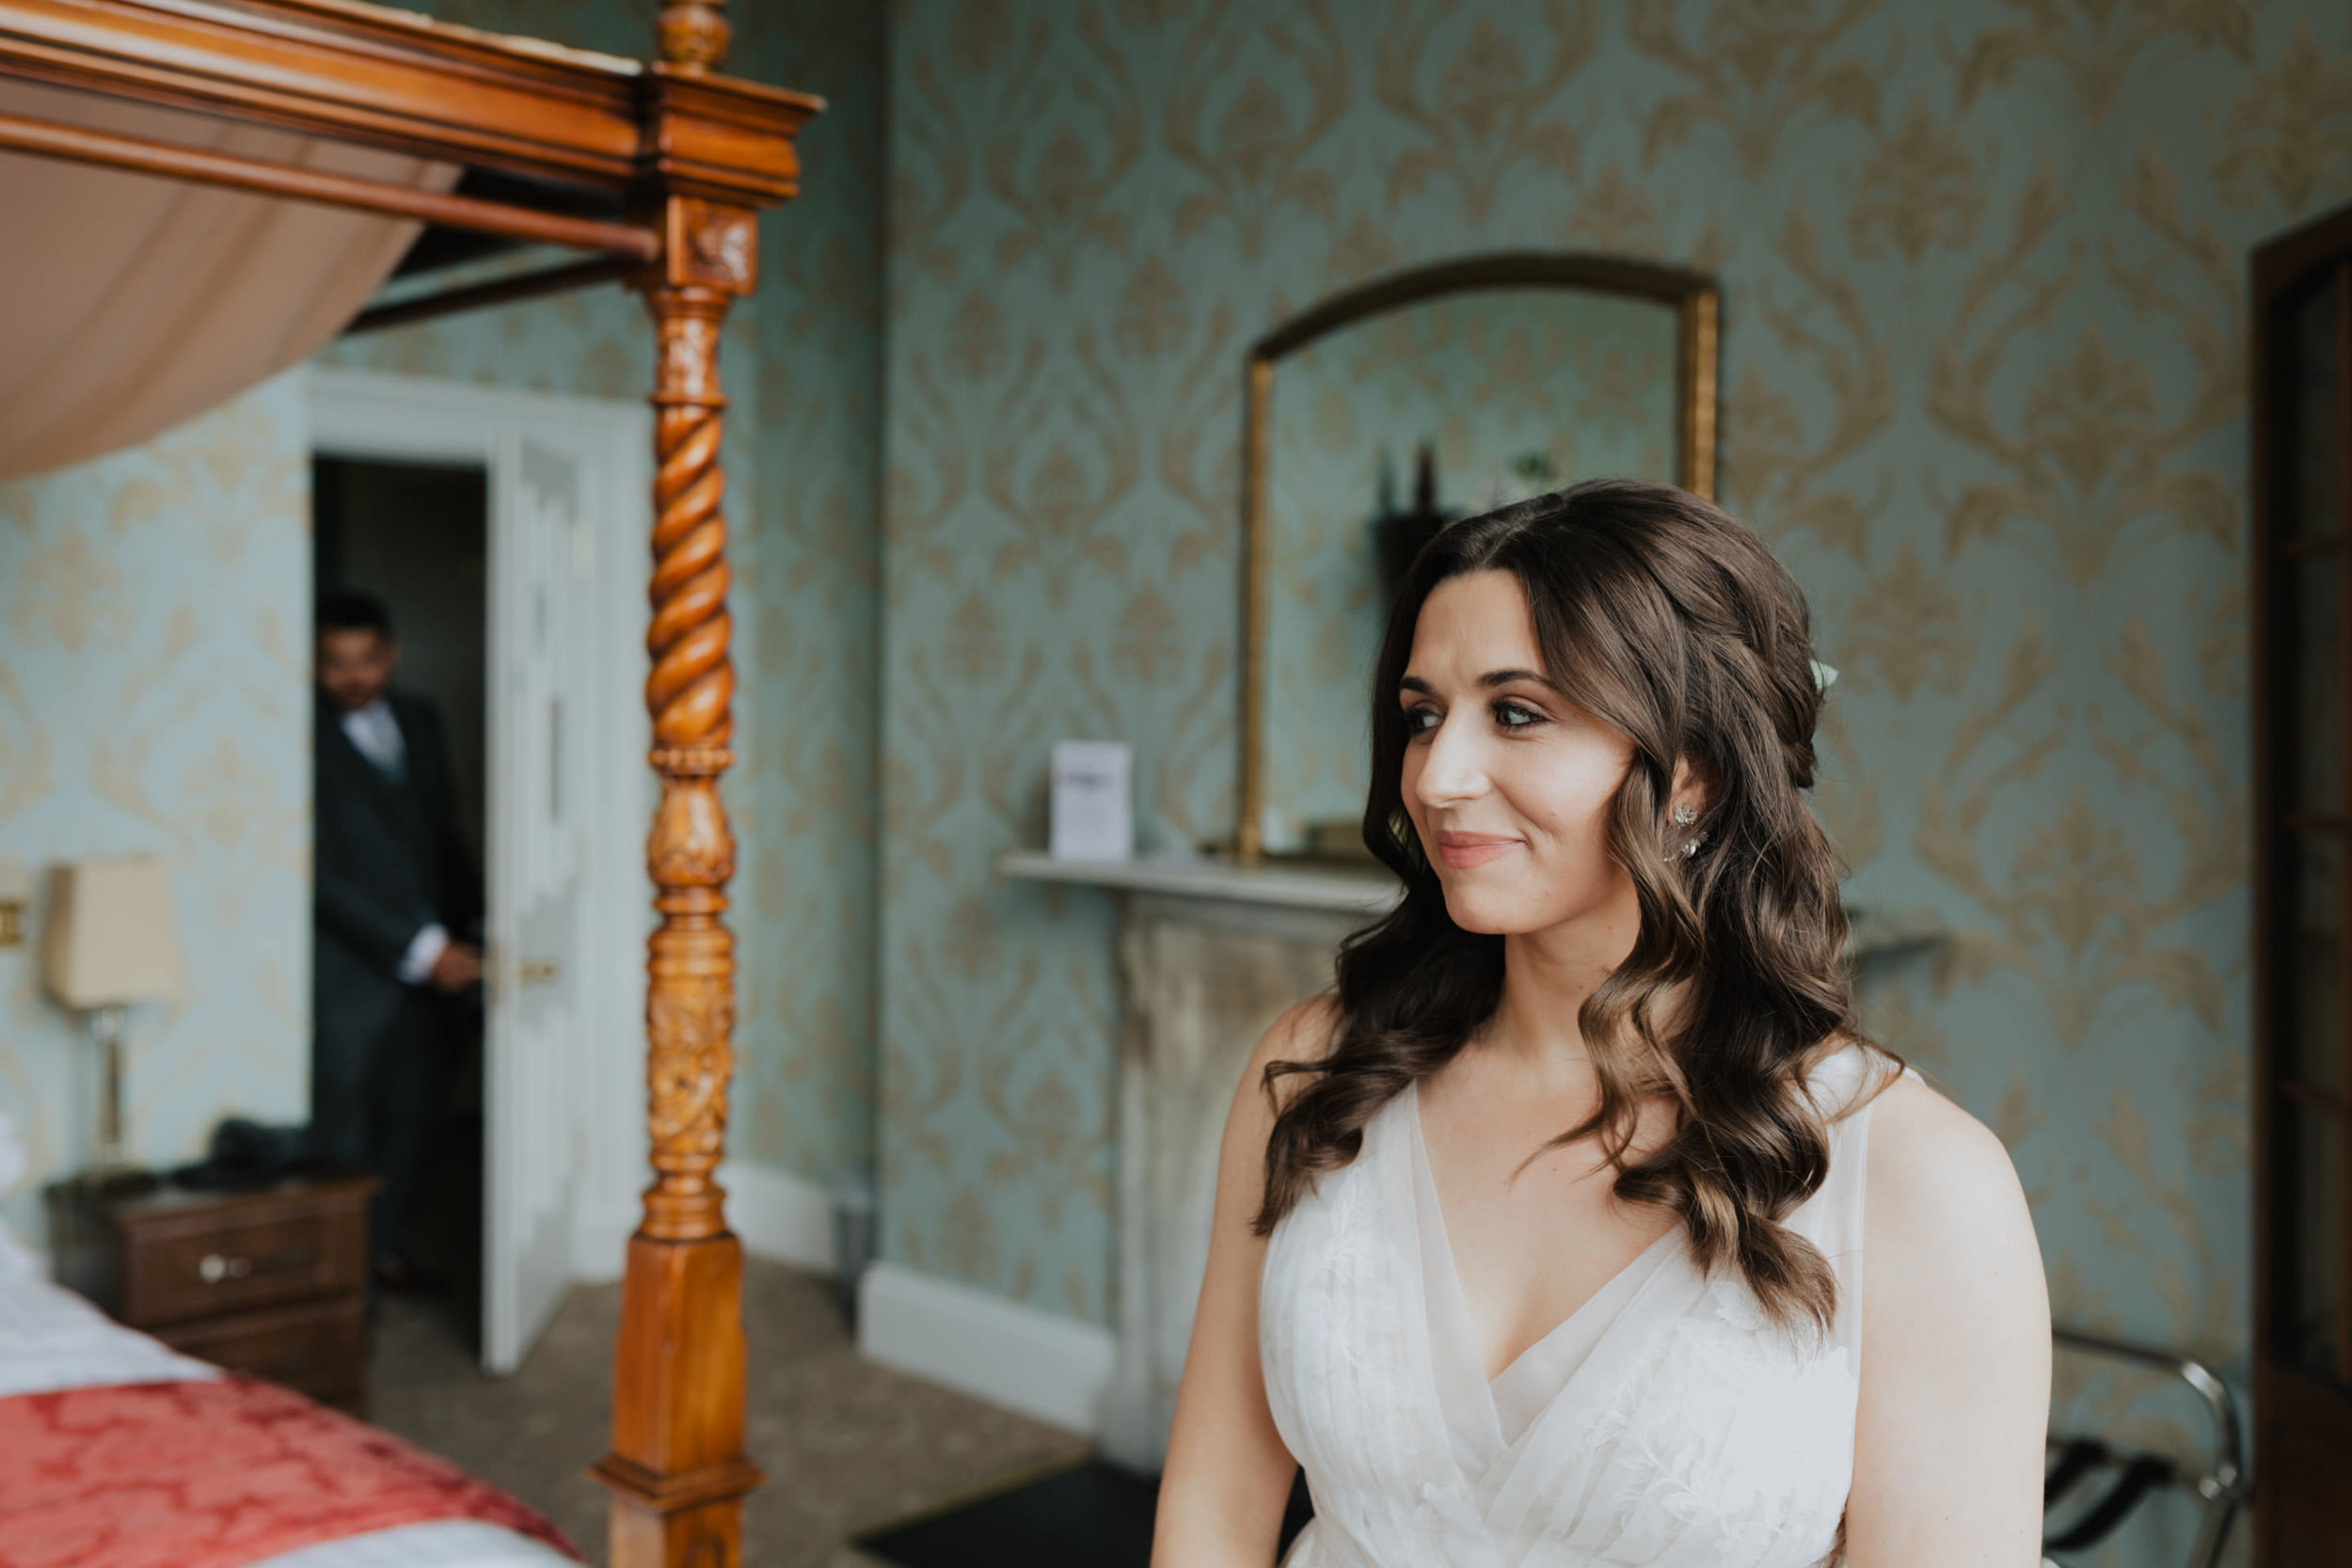 l-a-the-haven-dunmore-east-wedding-photographer-livia-figueiredo-07.jpg